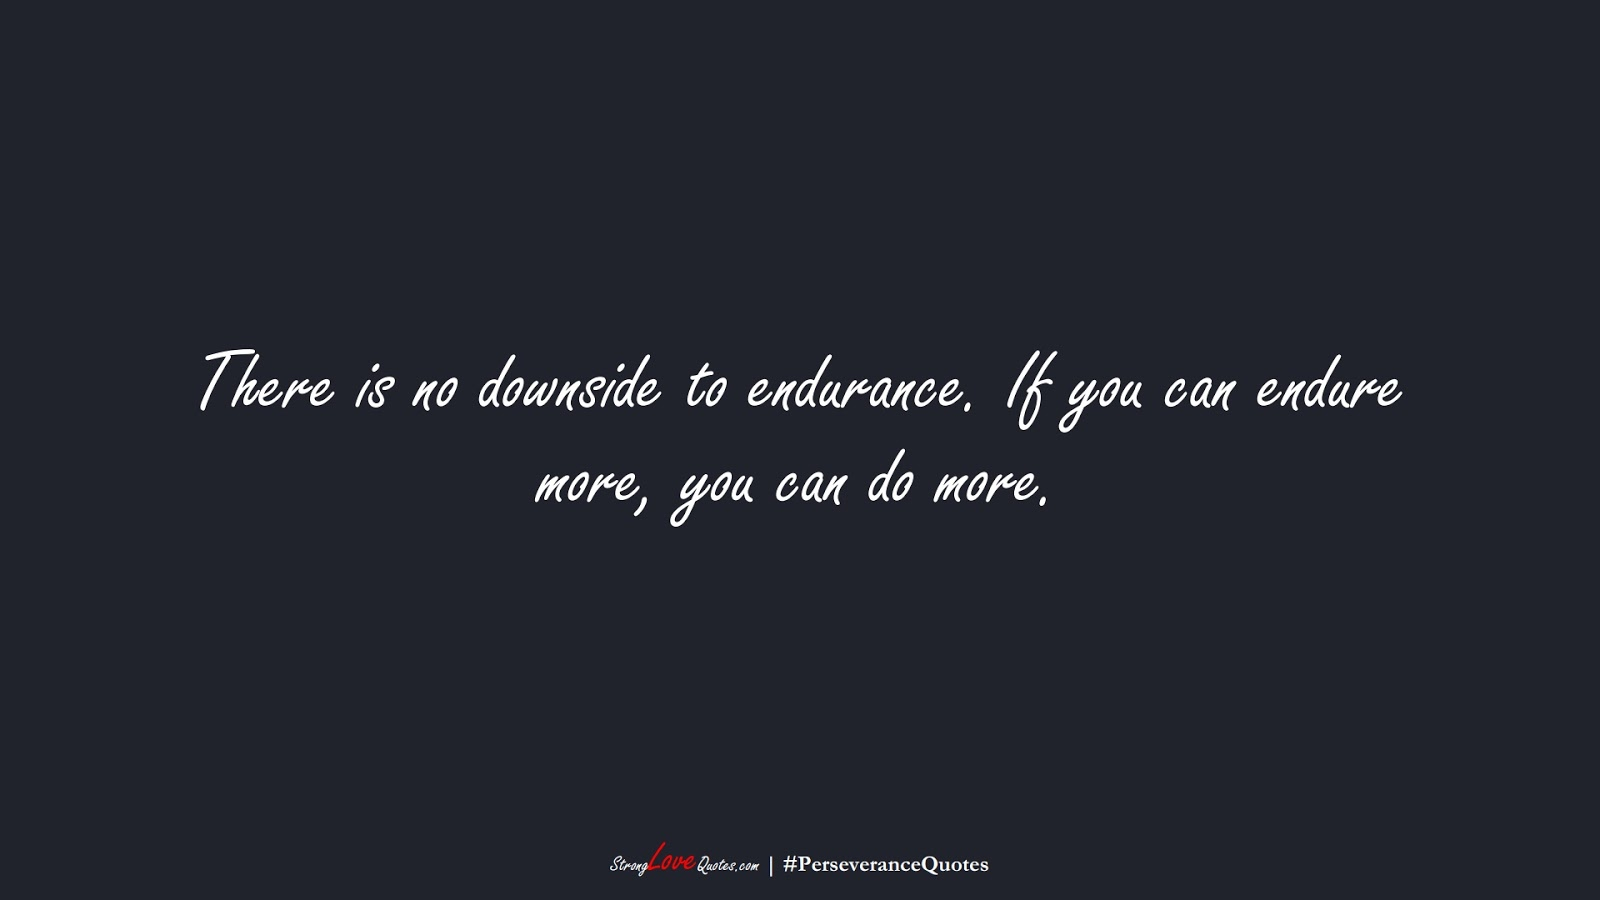 There is no downside to endurance. If you can endure more, you can do more.FALSE